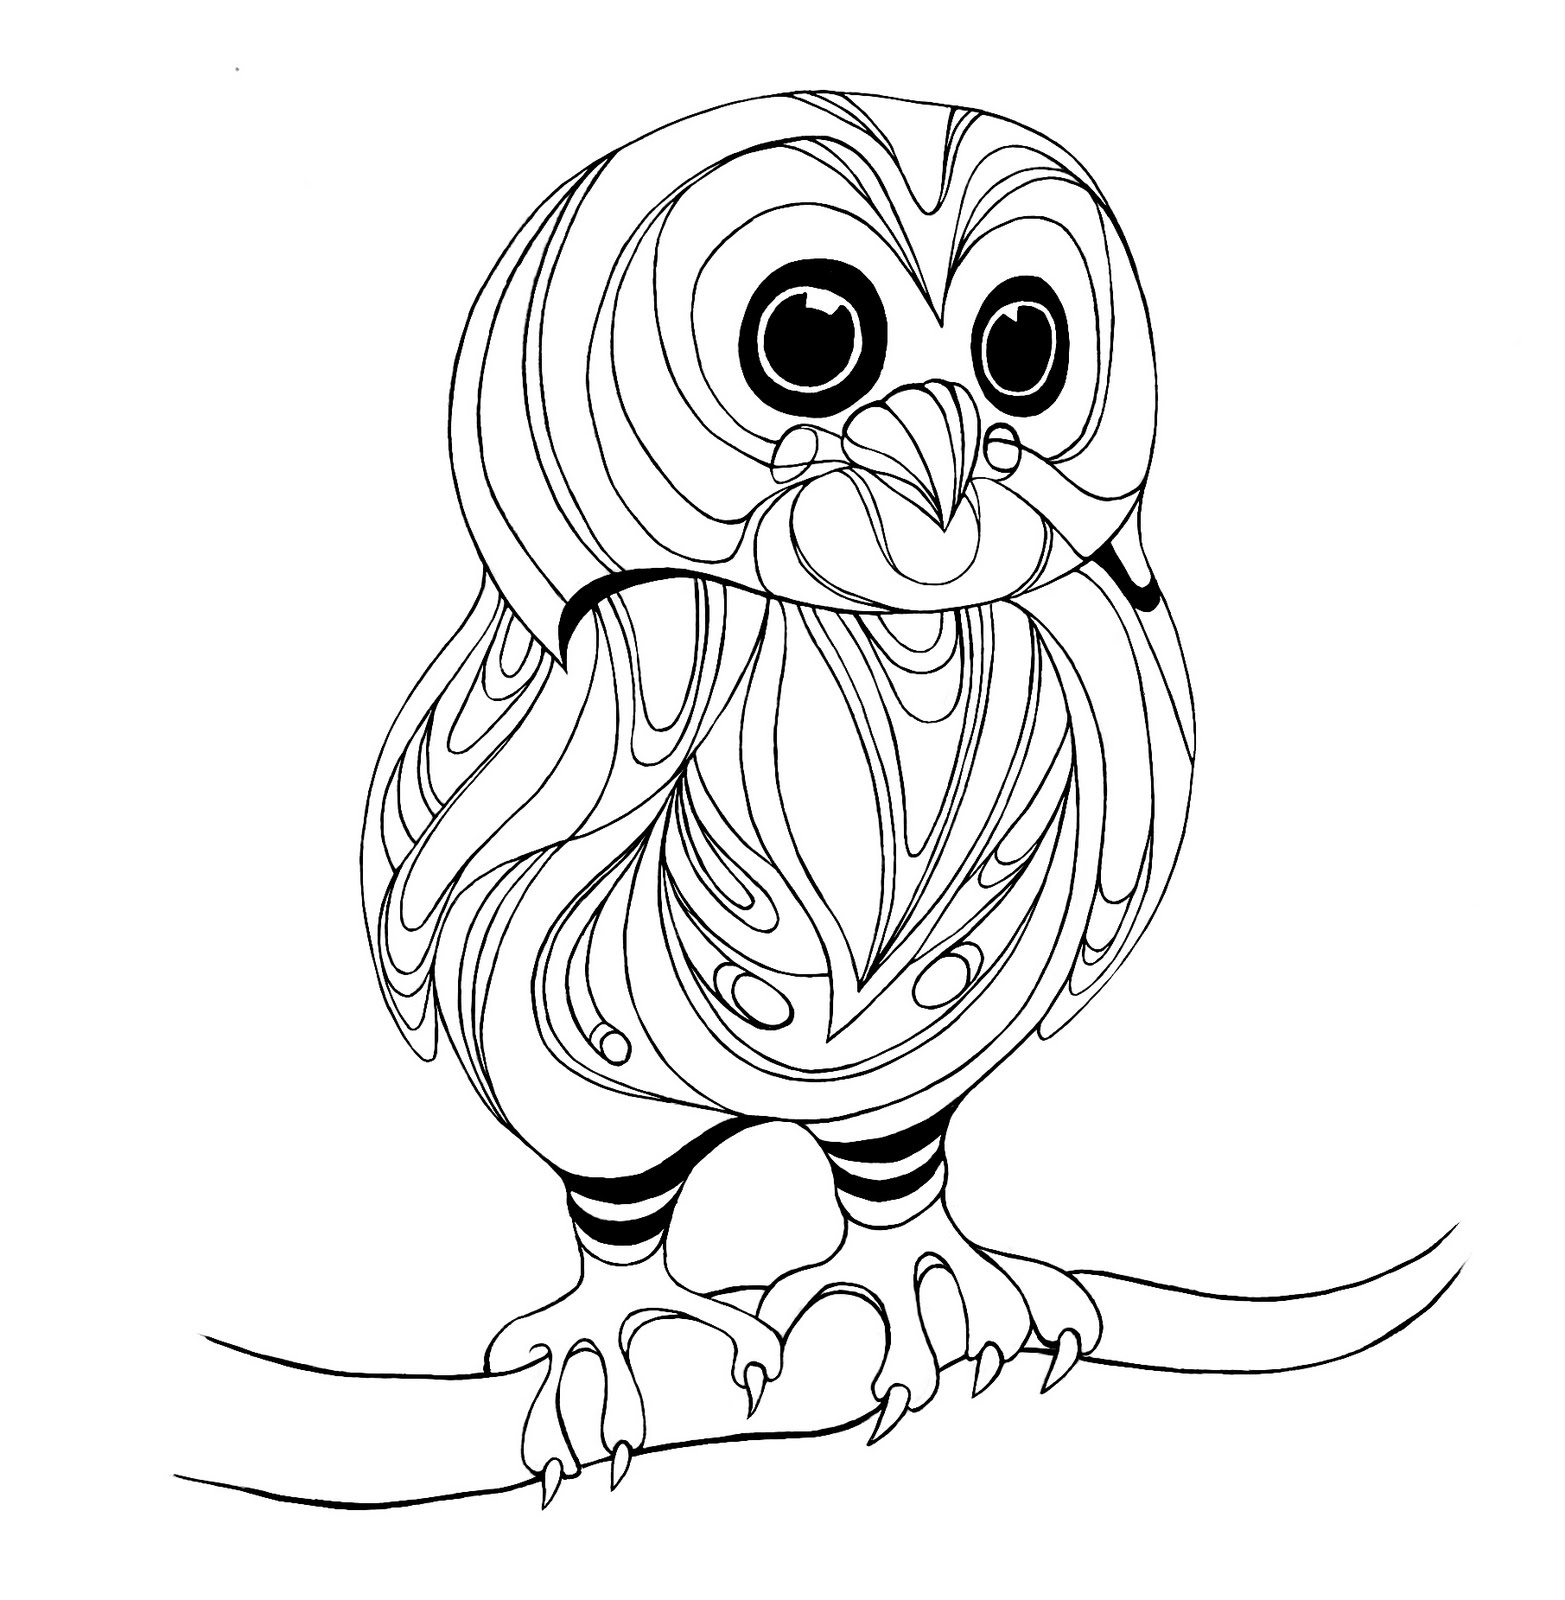 colouring picture of owl cartoon owl coloring page free printable coloring pages of colouring owl picture